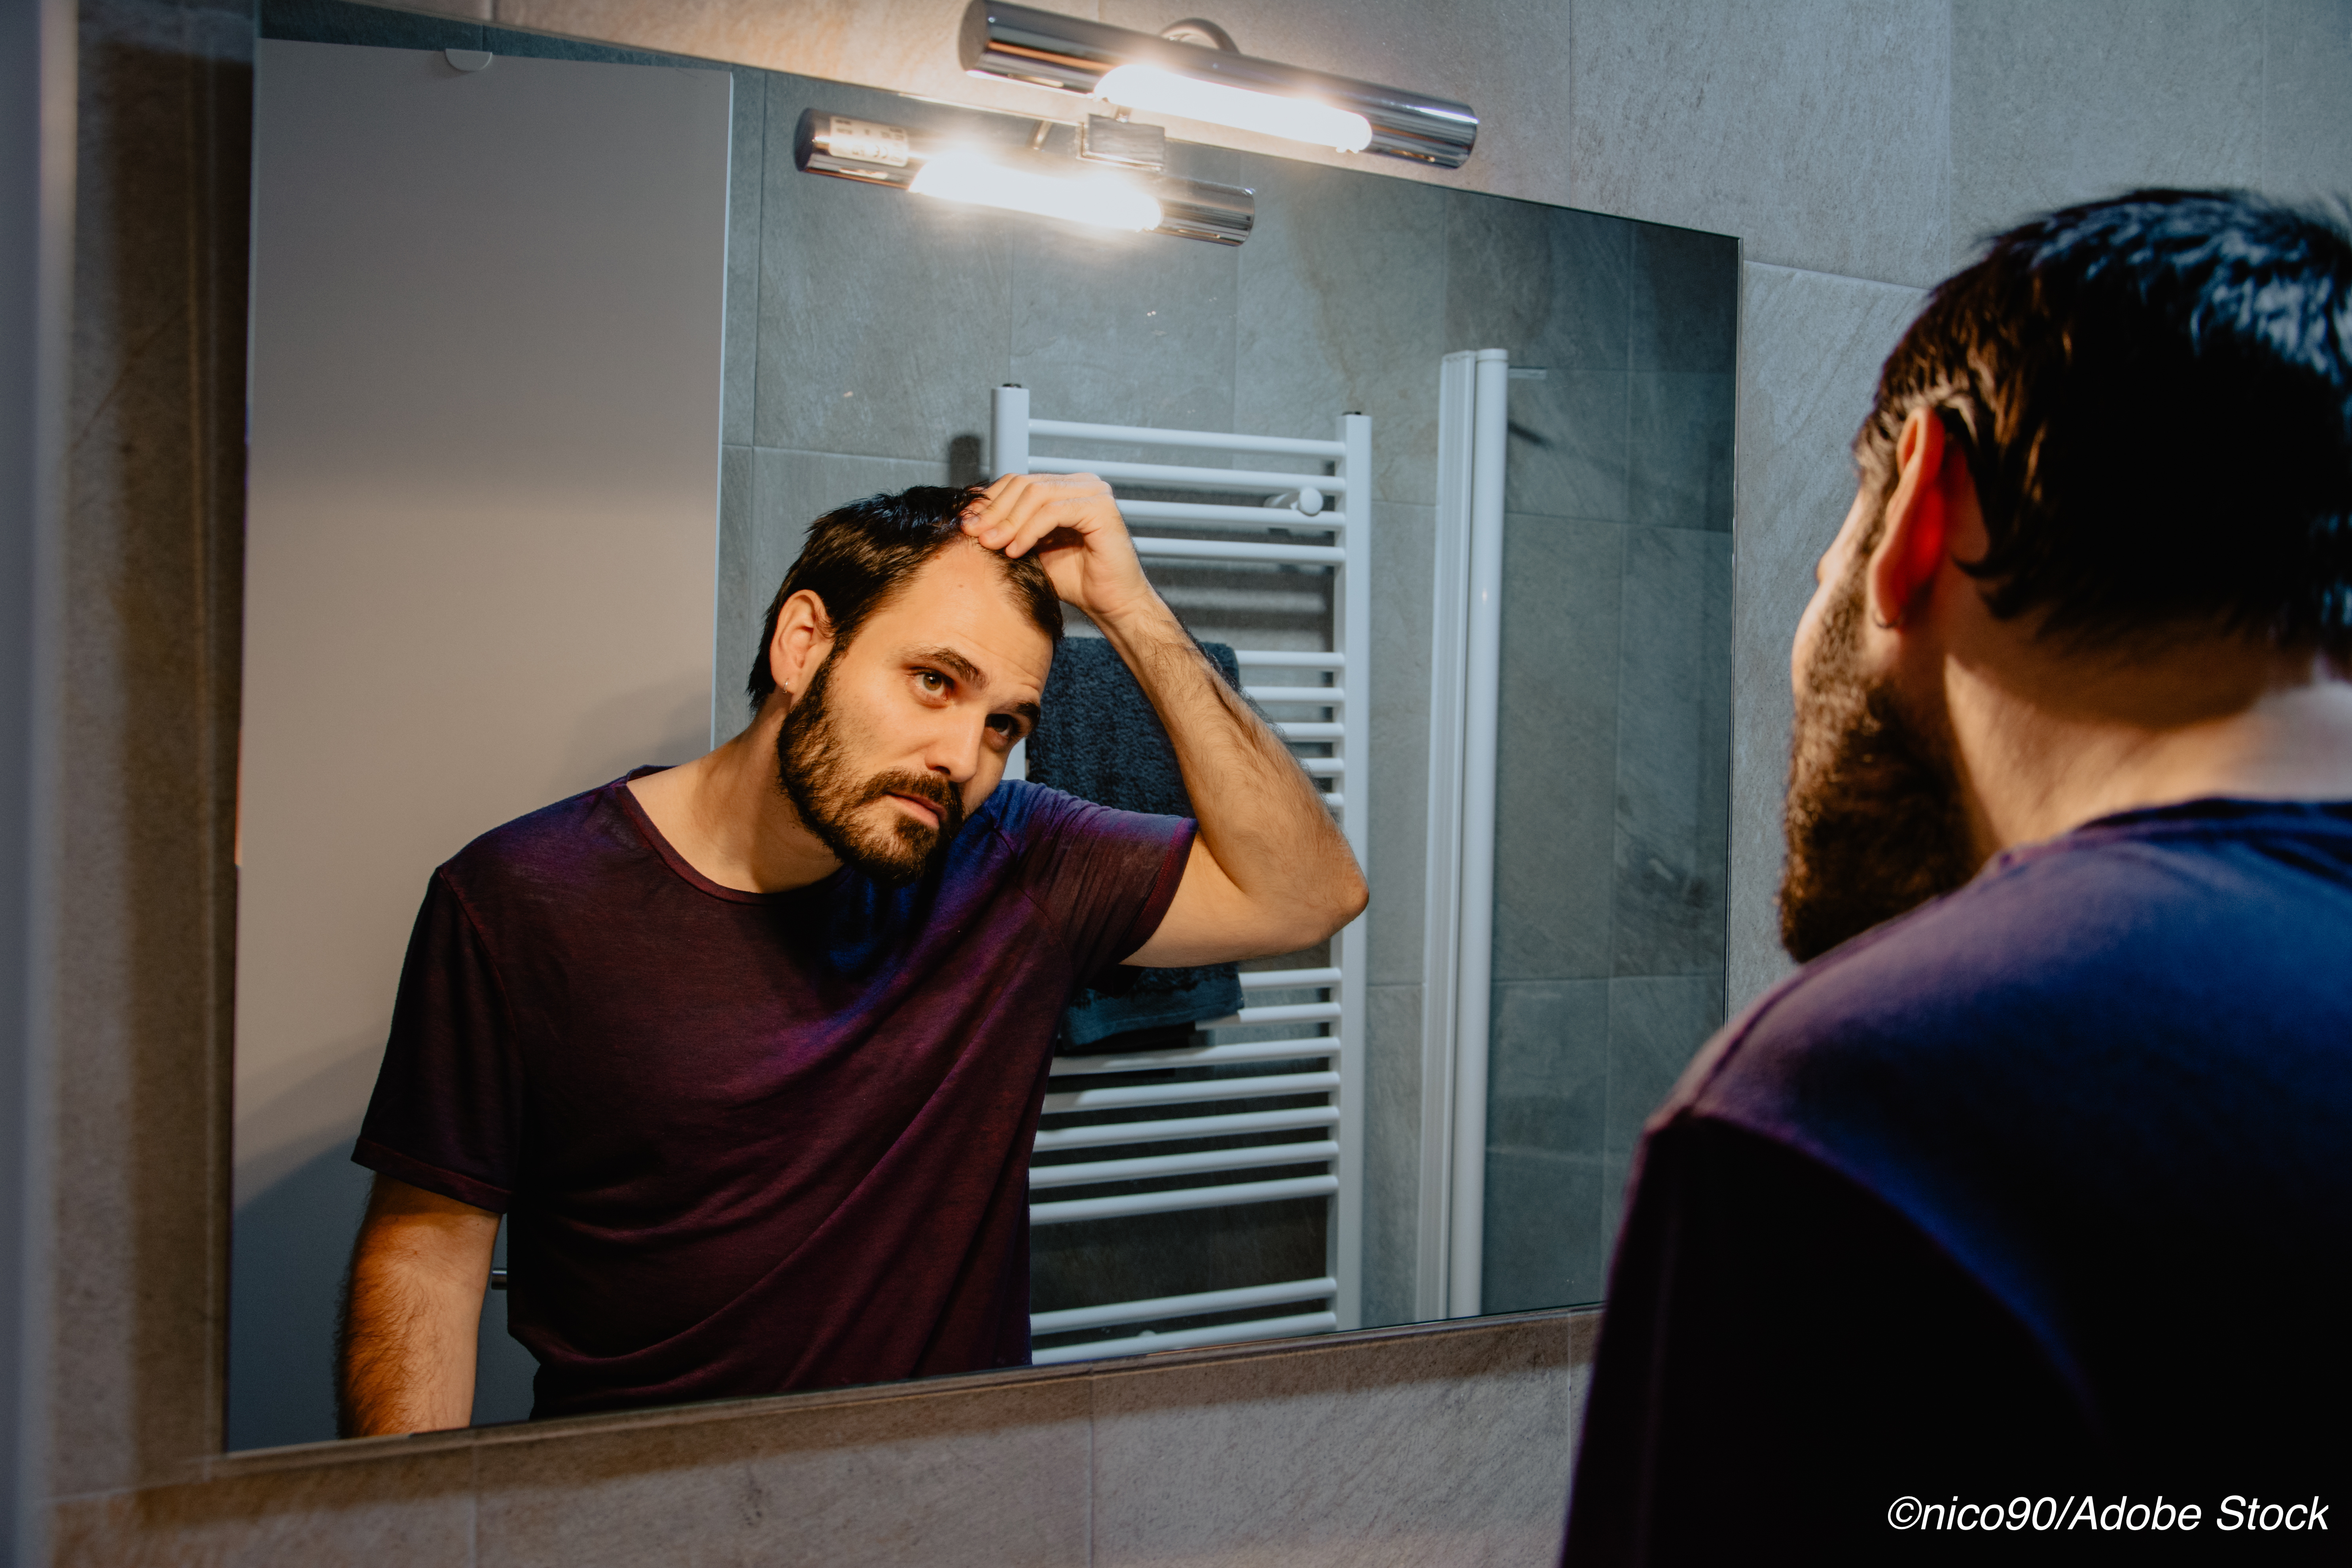 Hair Loss Drug Finasteride May Increase Suicide Risk Younger Men